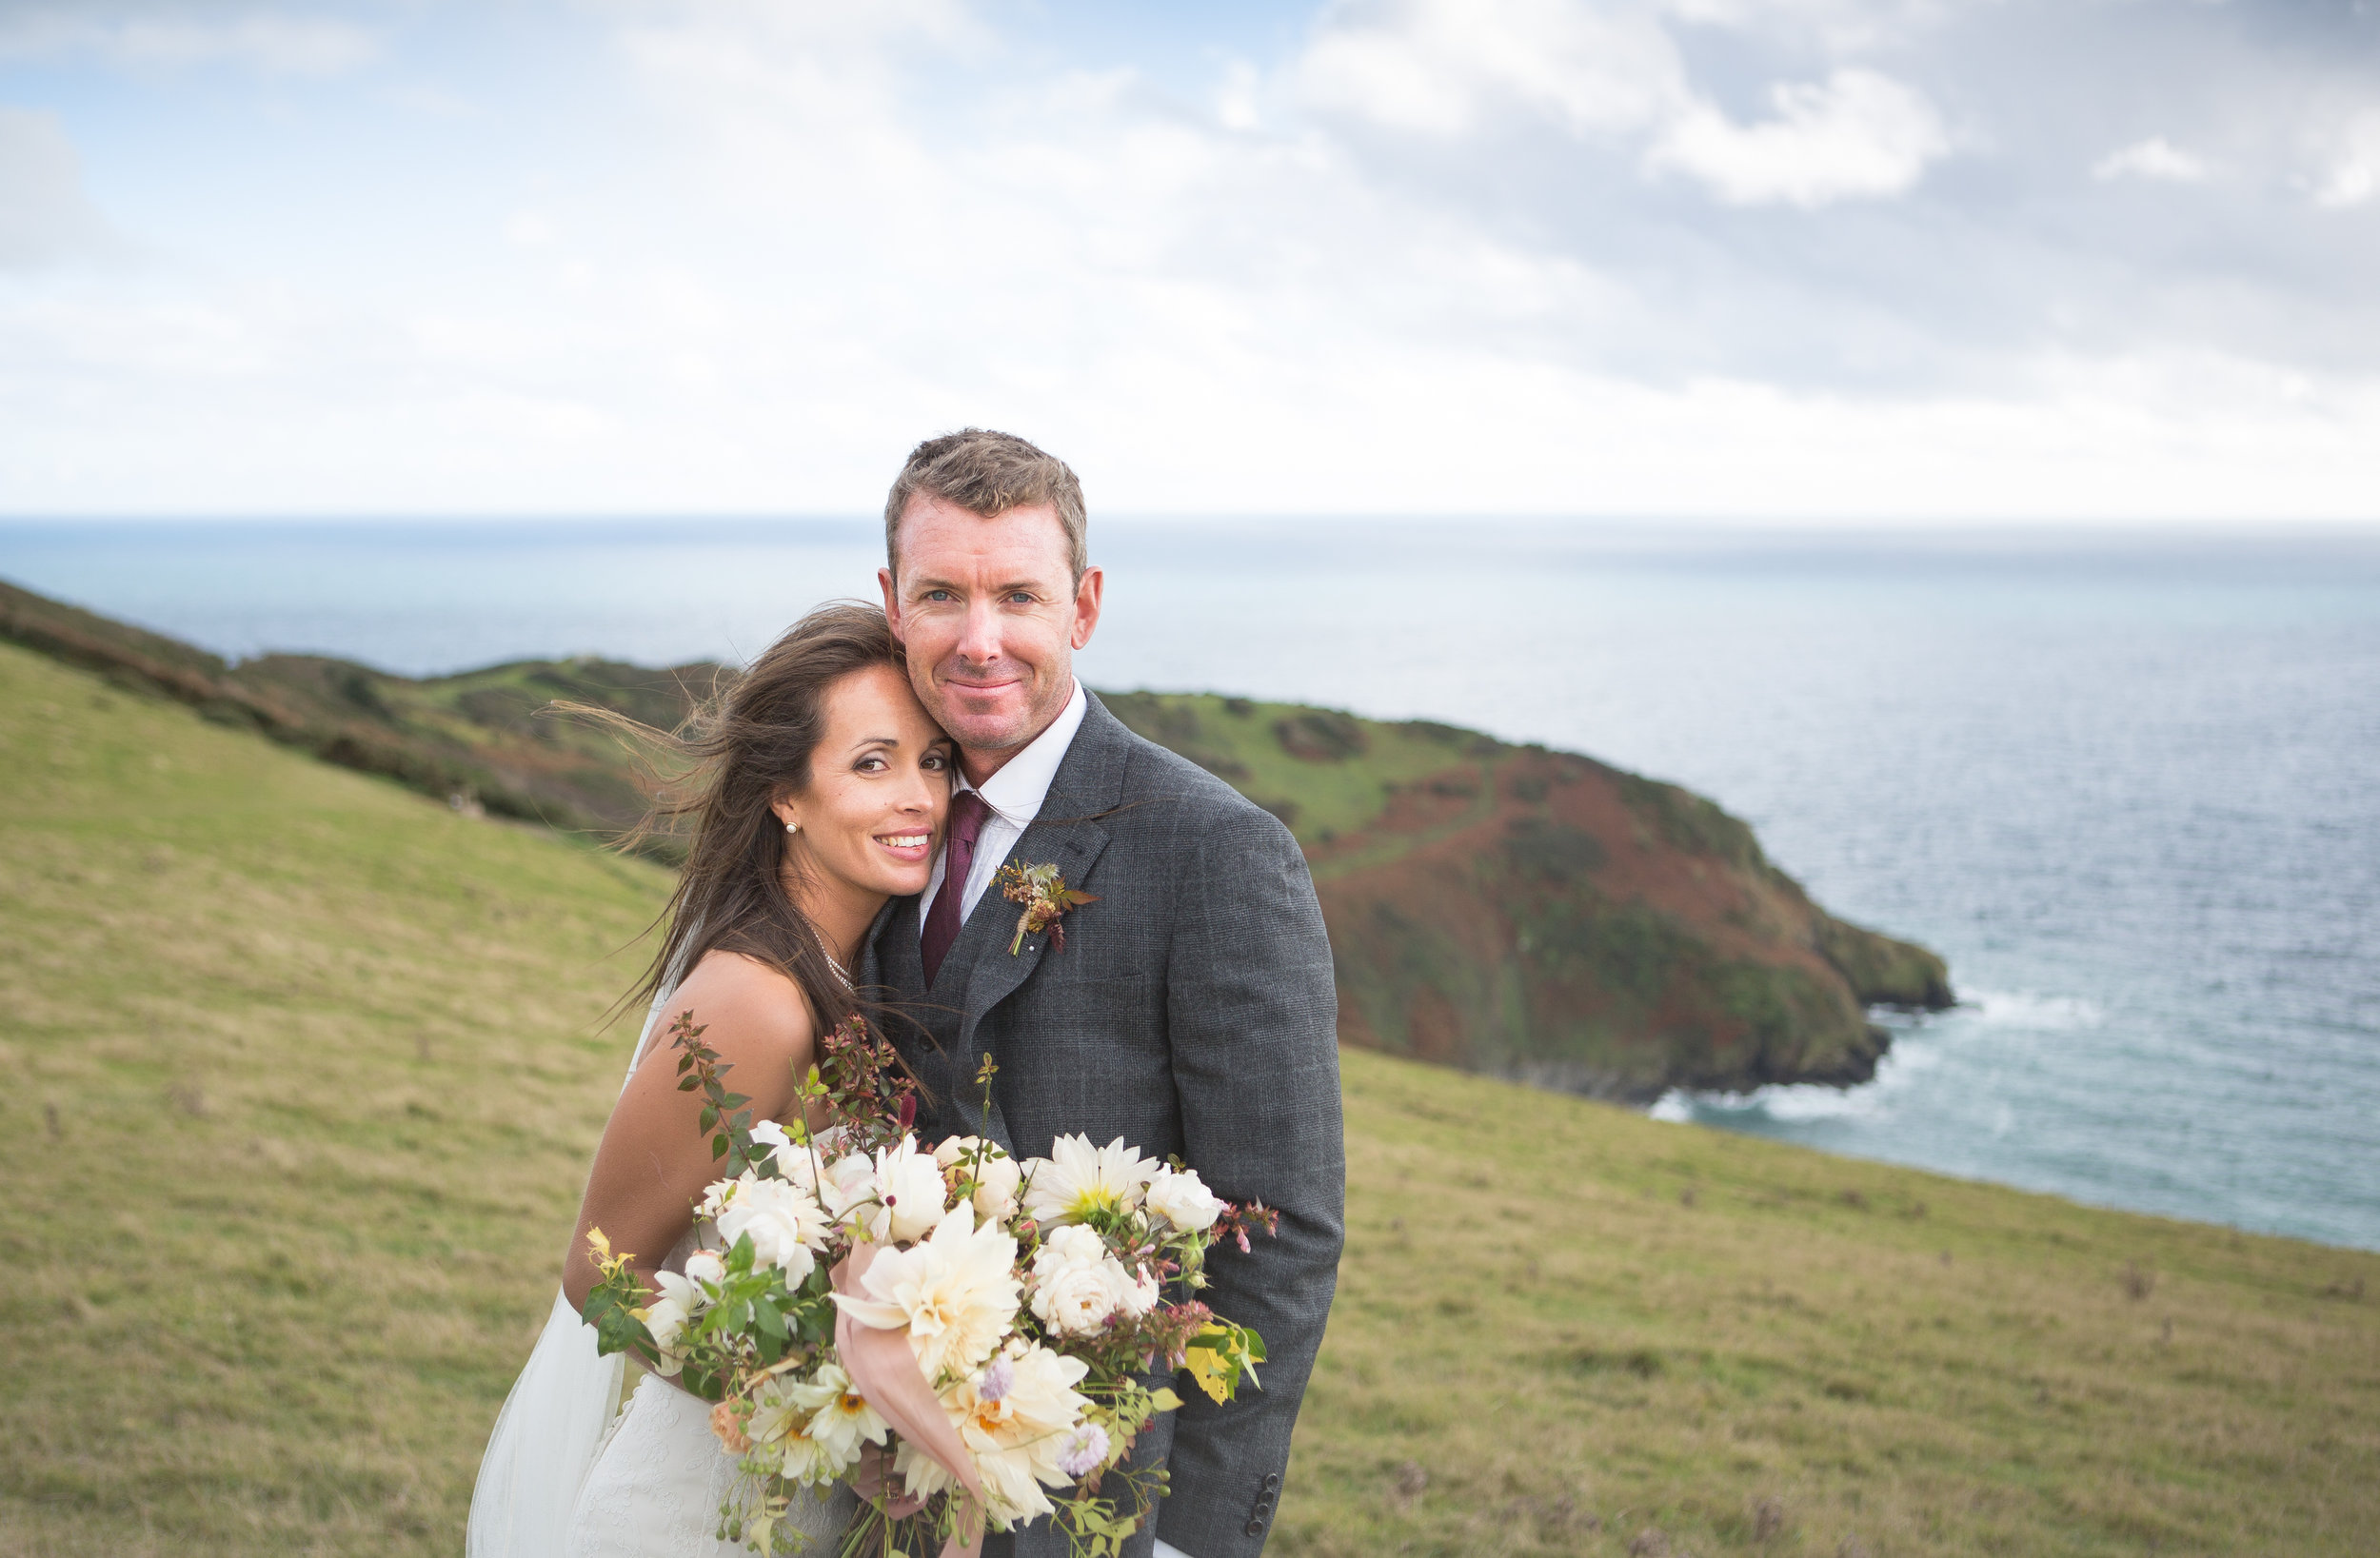 James & Carly - image by Ashley Hampson